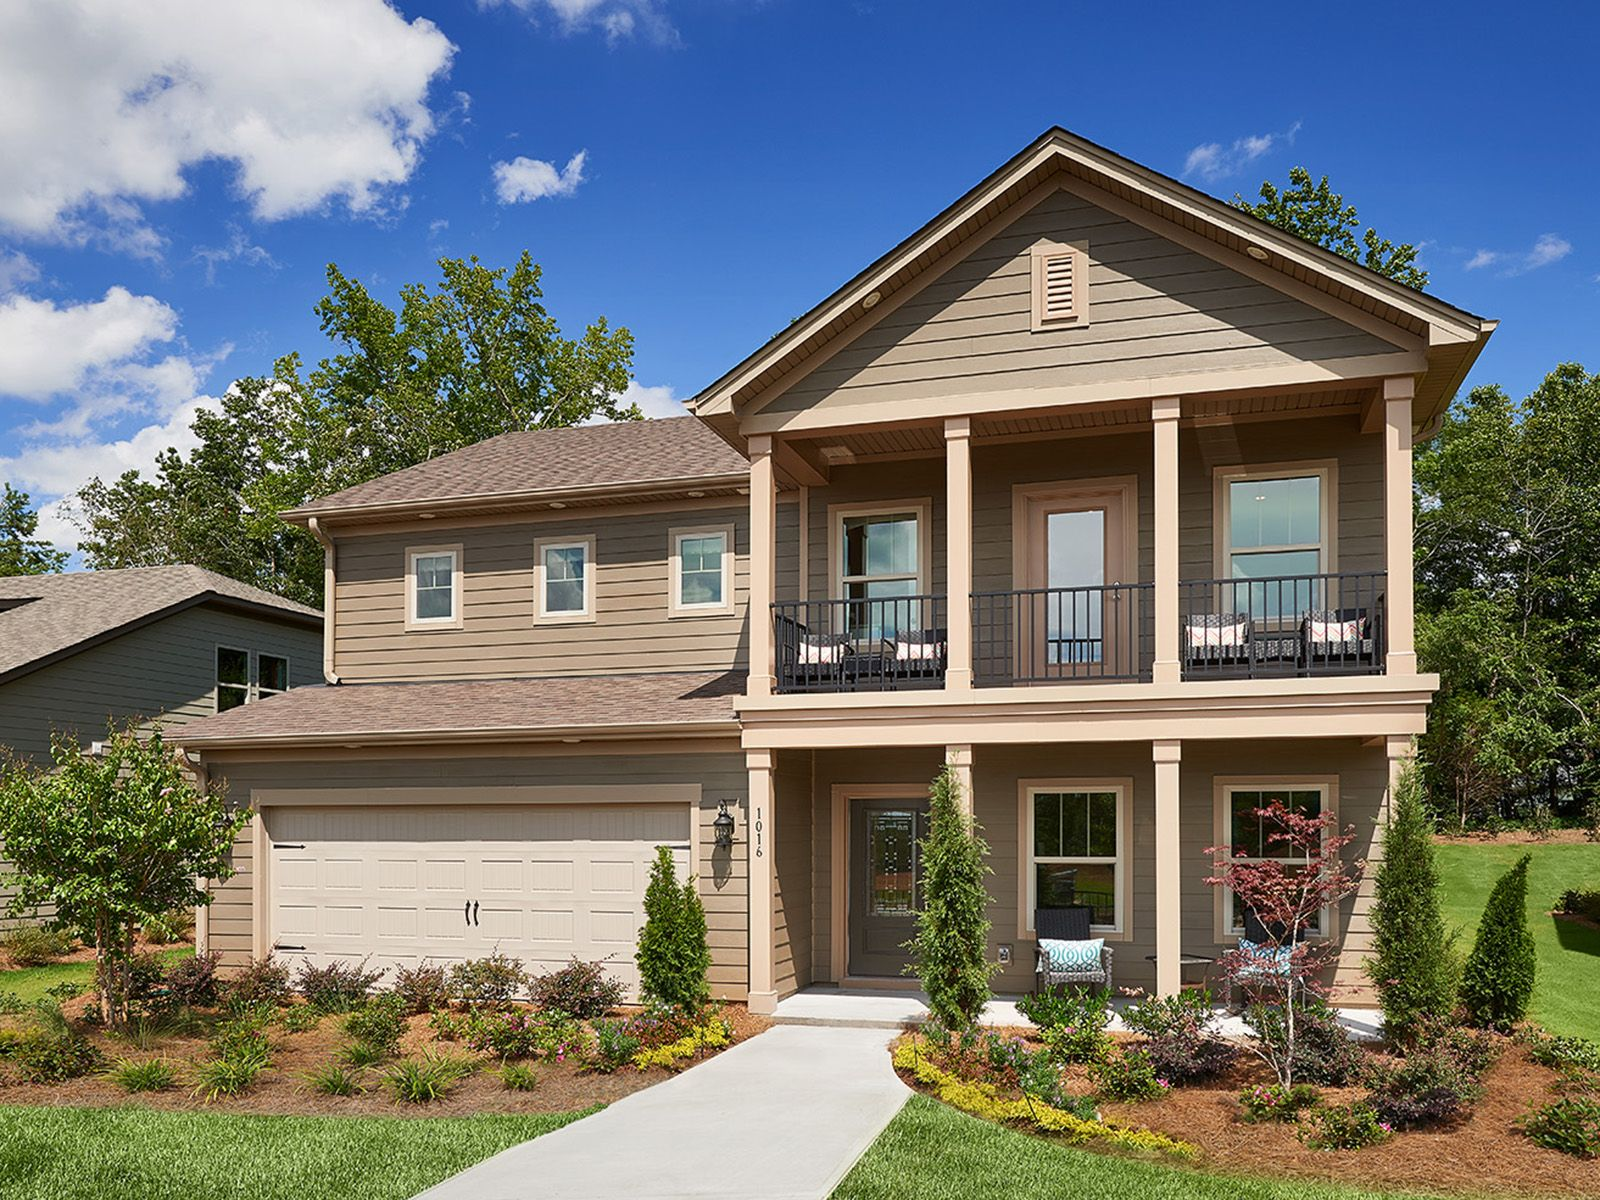 Ellington Downs - The Gardens Collection in Monroe, NC, New Homes ...